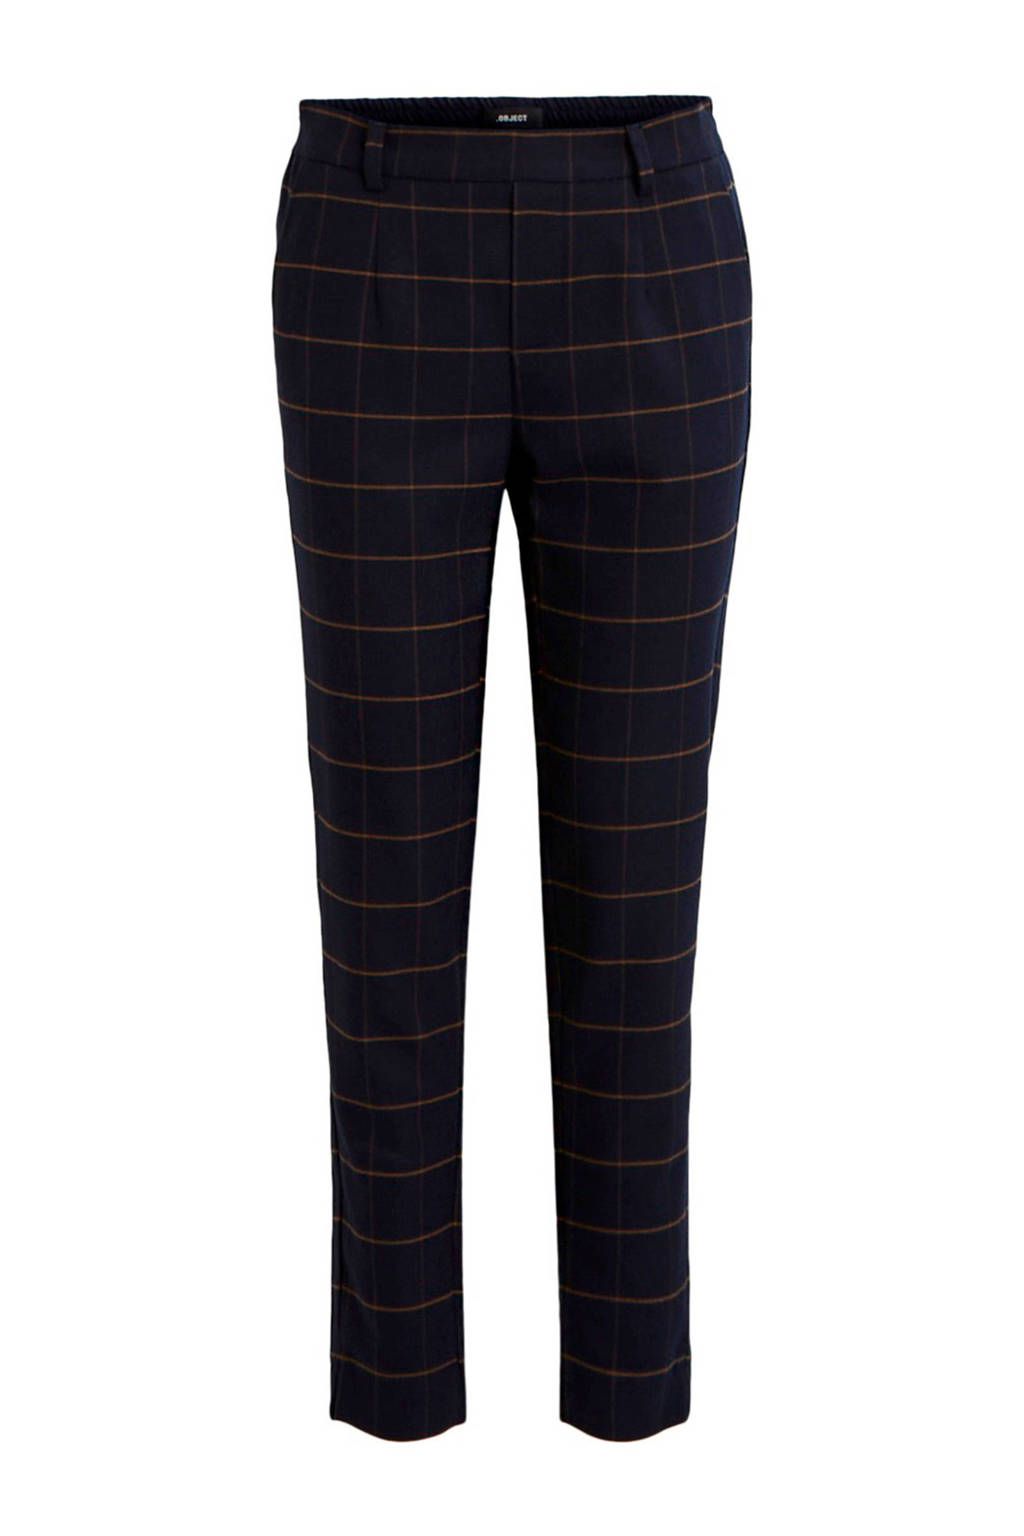 OBJECT geruite regular fit broek donkerblauw, Donkerblauw